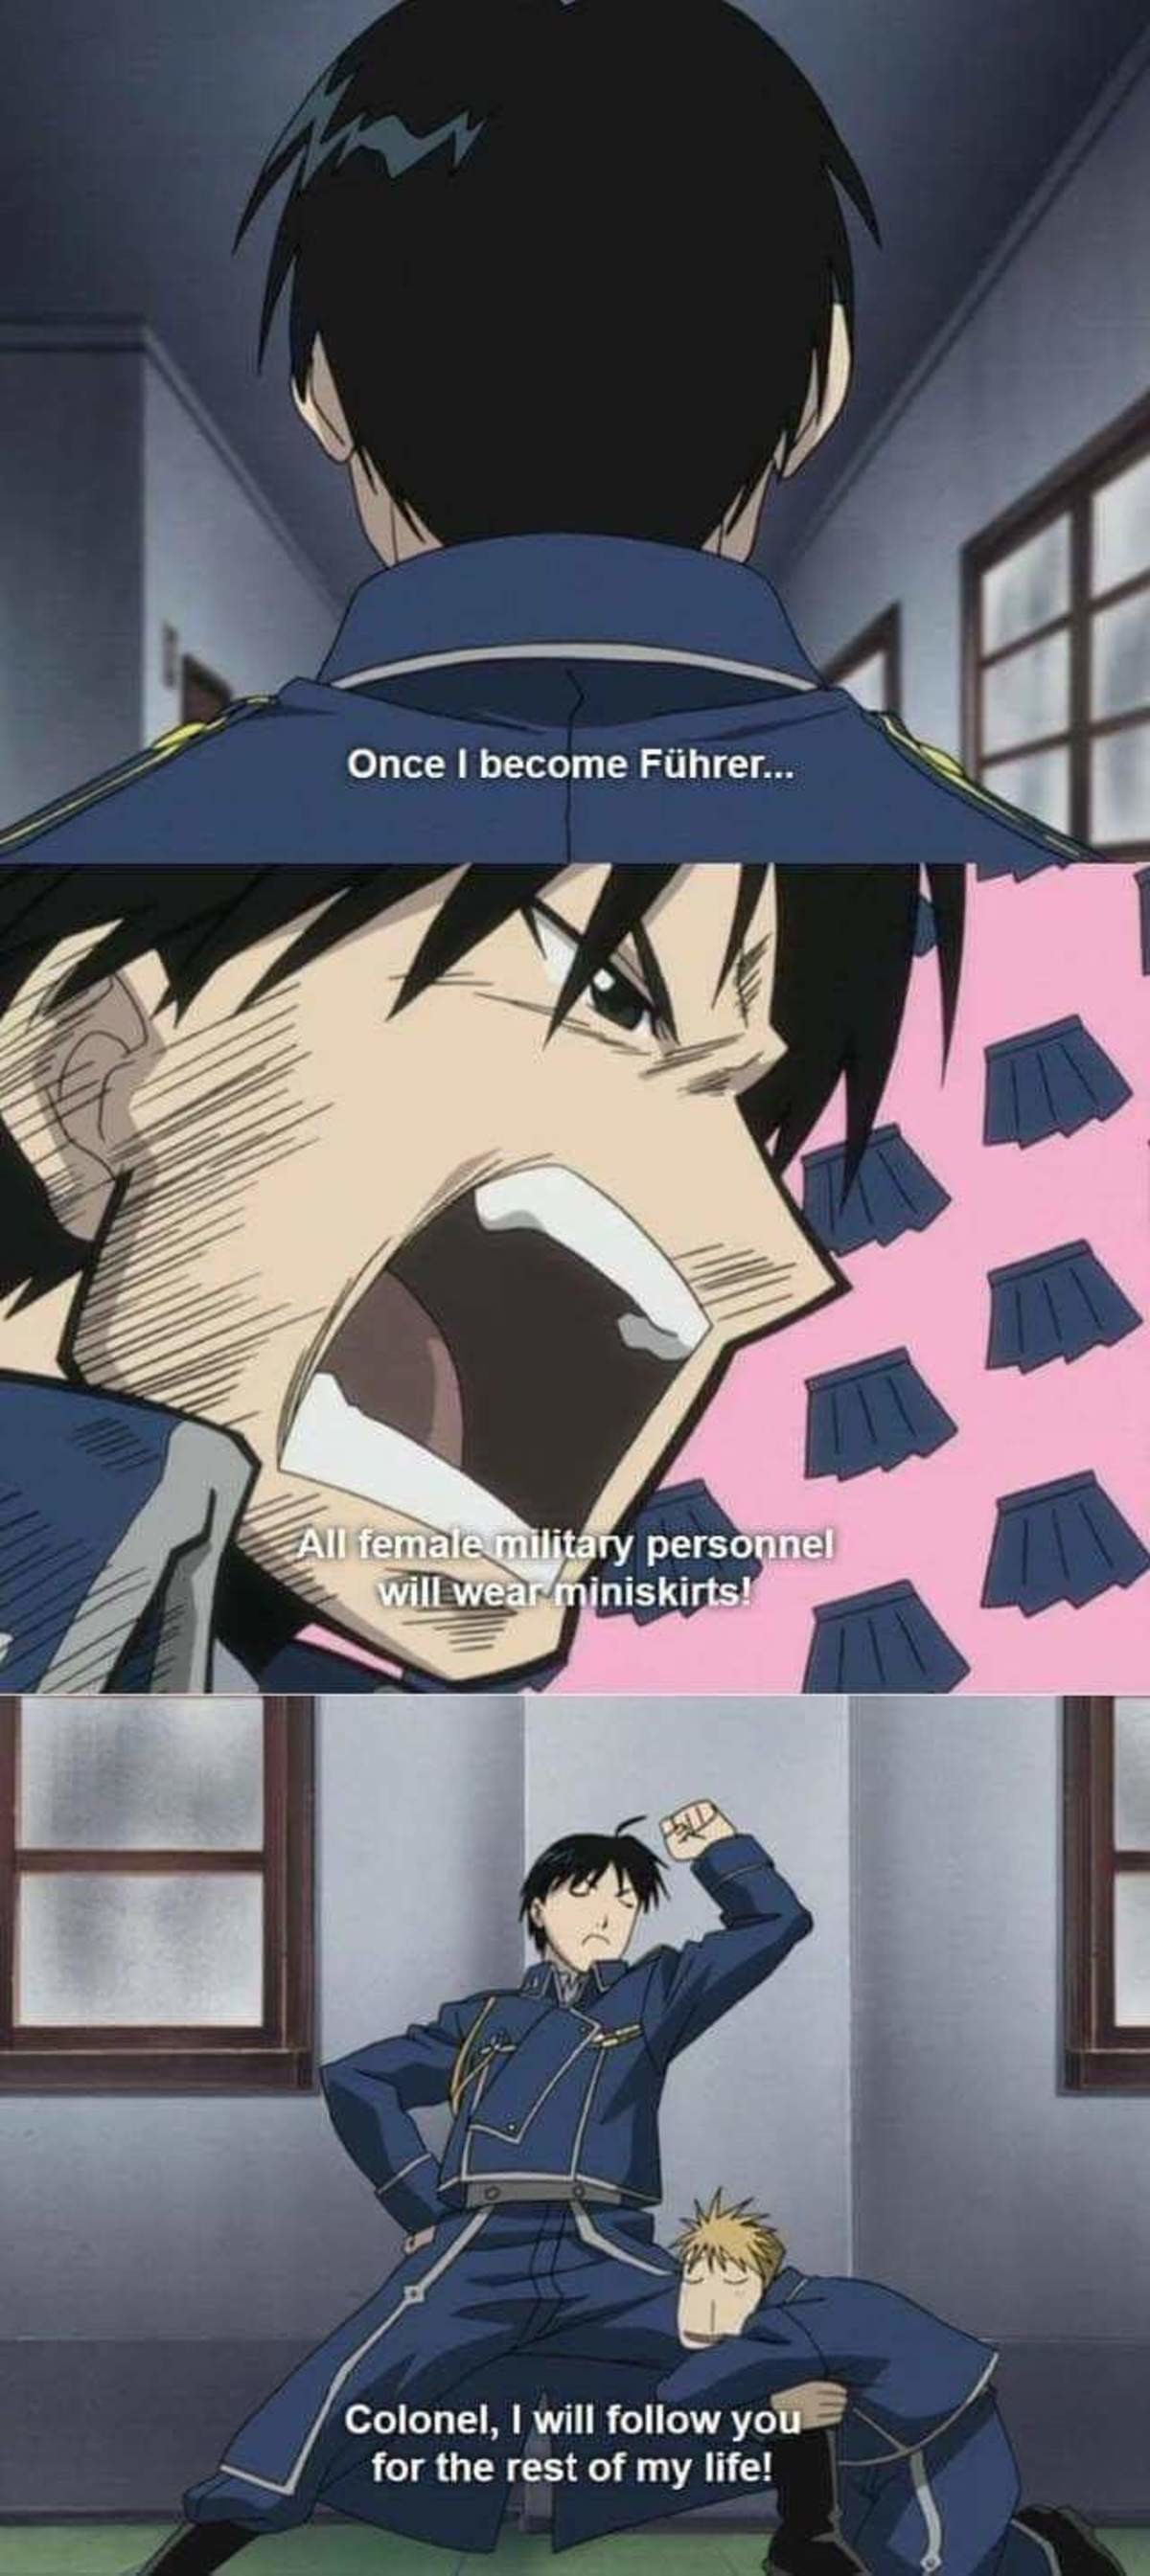 Roy mustang. .. it's even better with sound